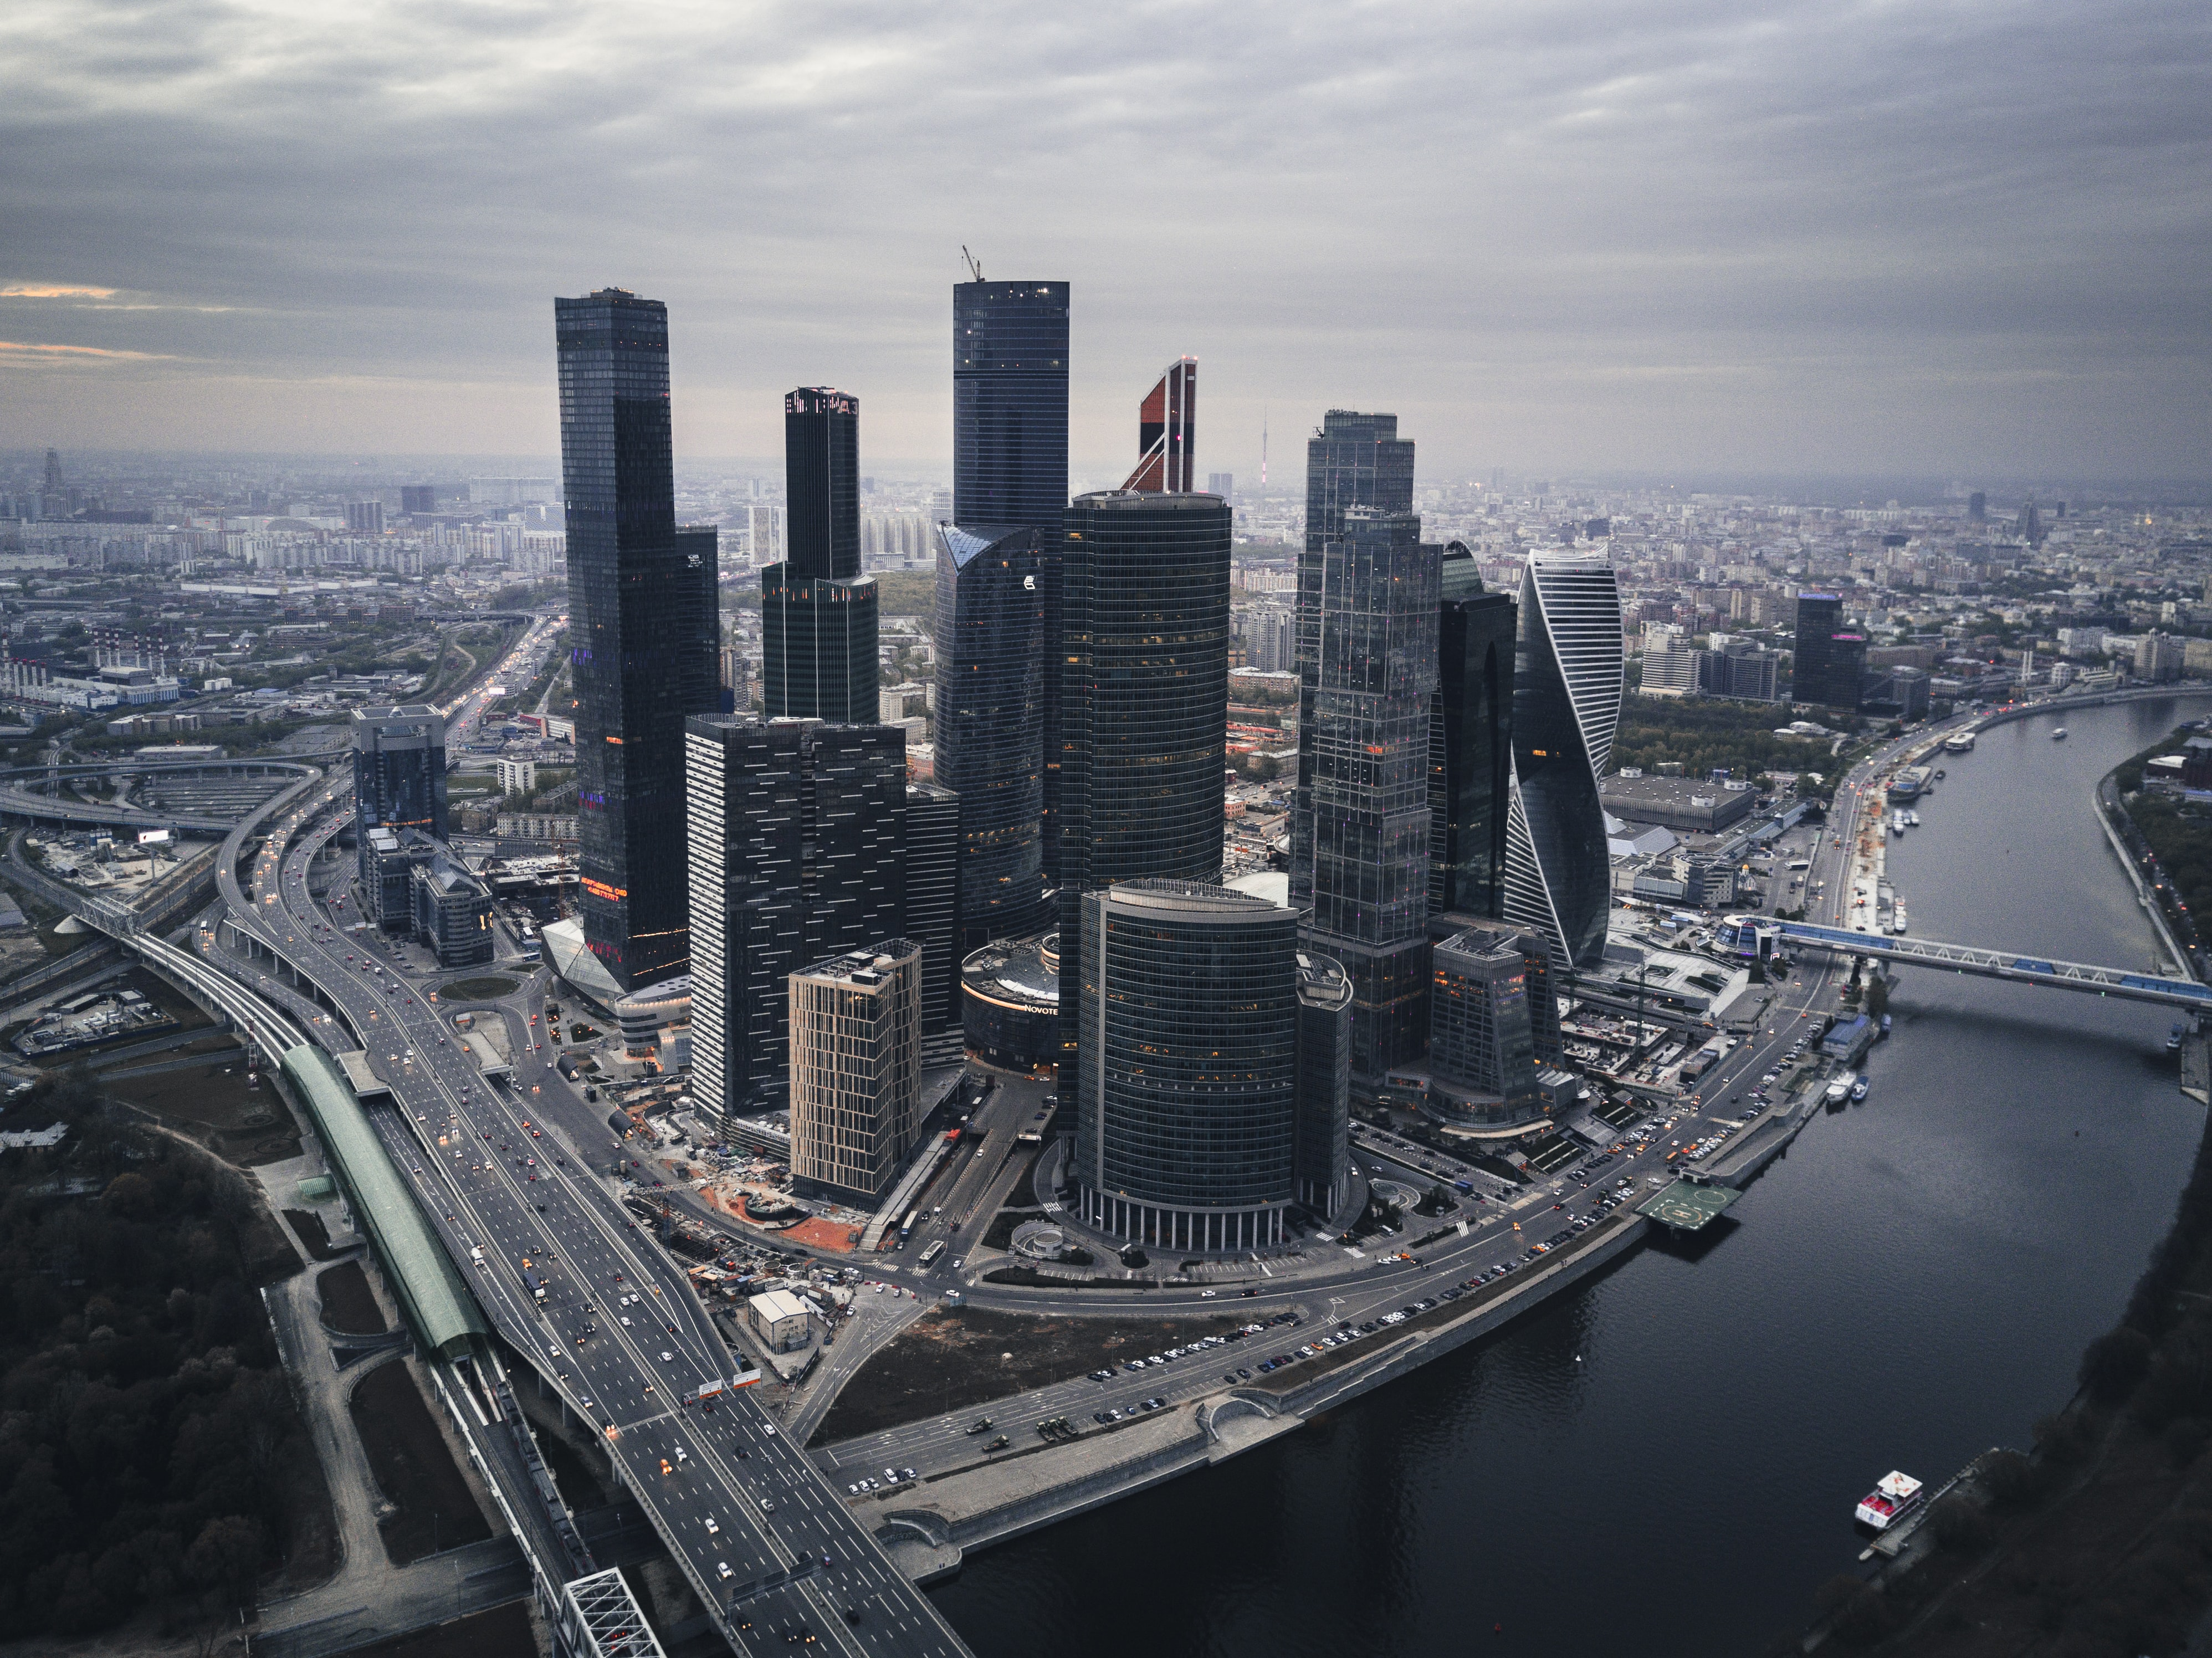 High-rises in Moscow by the Moskva river on a cloudy day